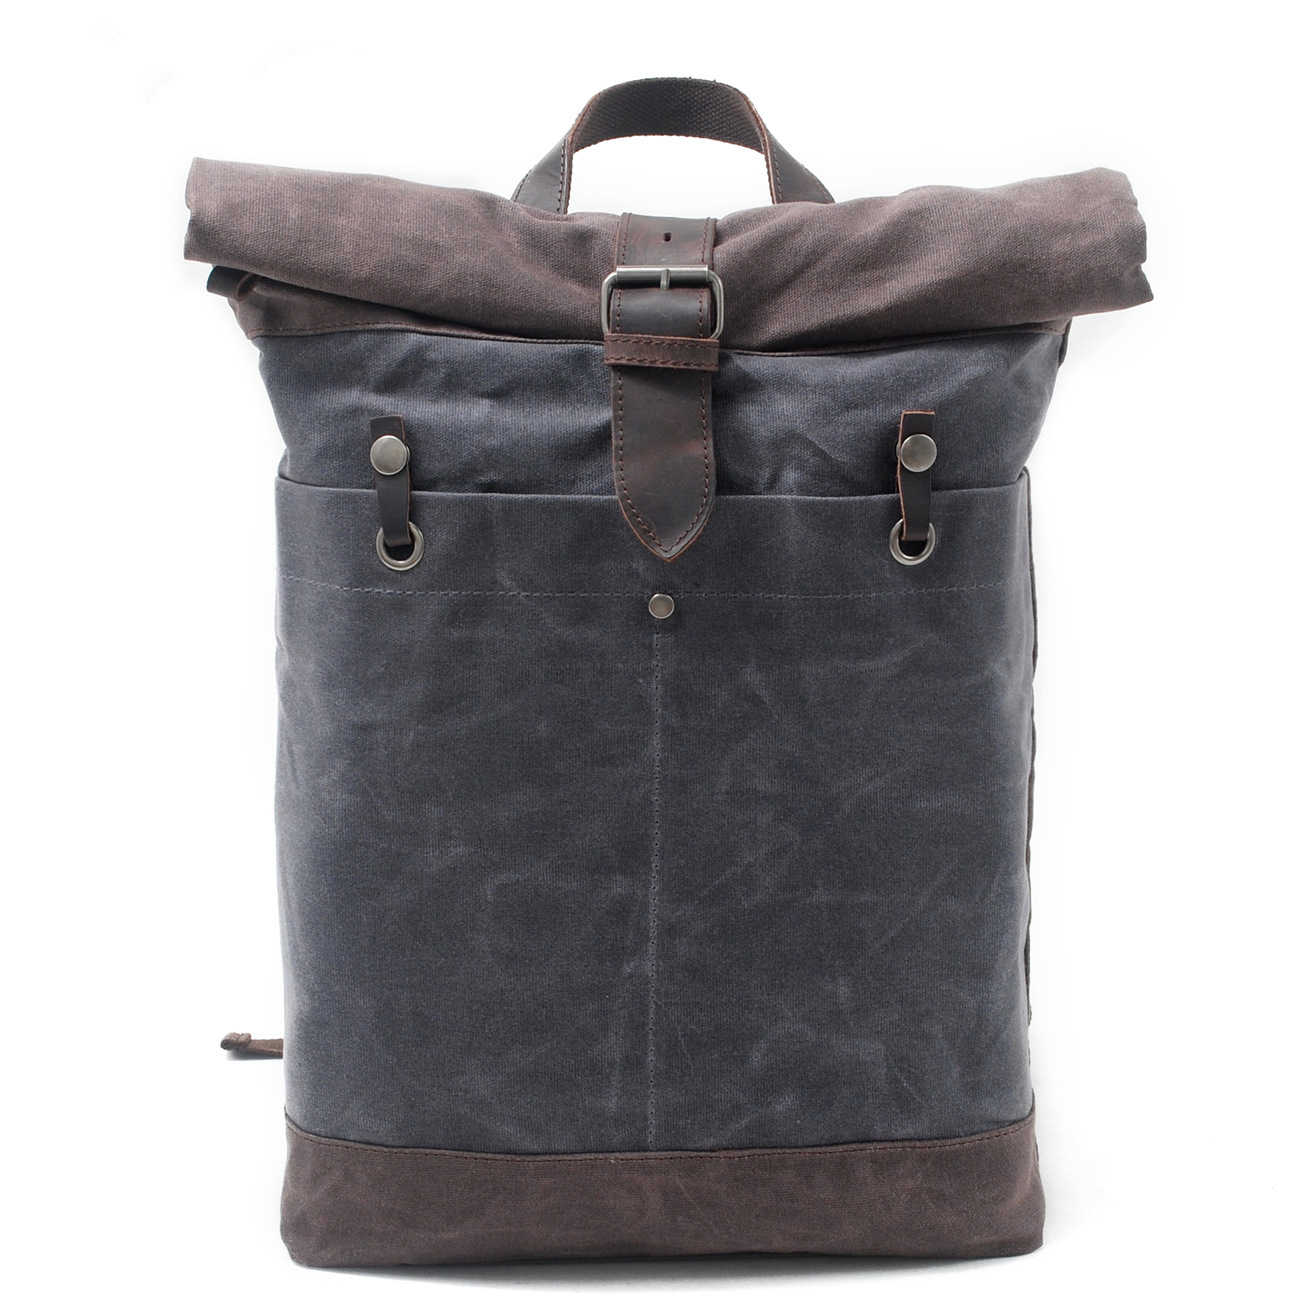 79523586d Melodycollection Man OilSkin Bags Batik Waxed Canvas Rucksack Backpack Roll  up top bag men's waterproof out